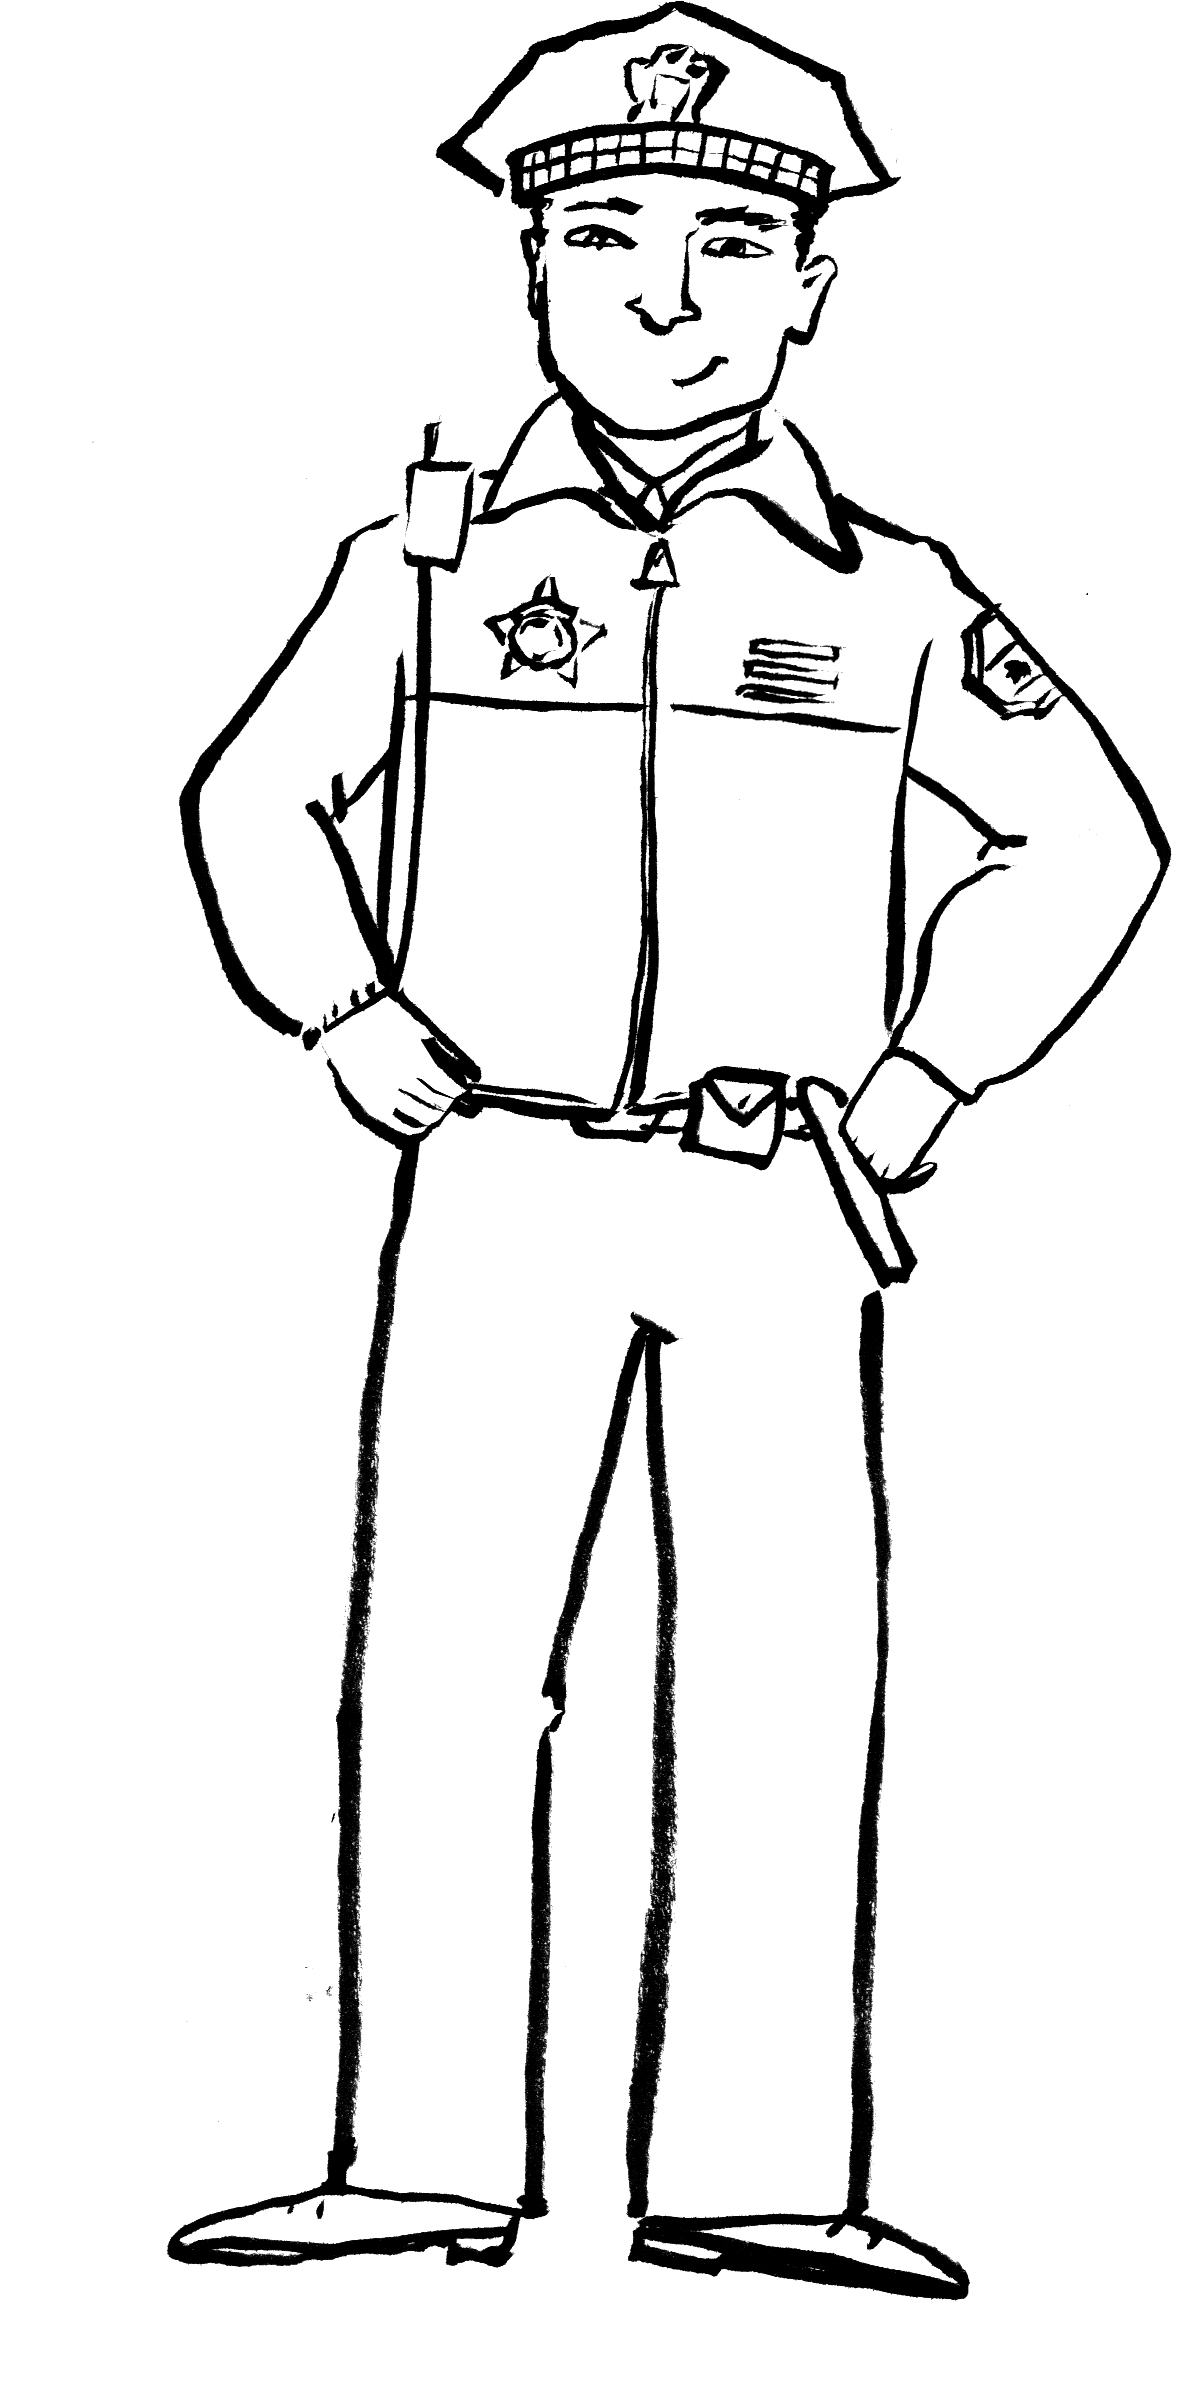 coloring pages of police officer - photo#33